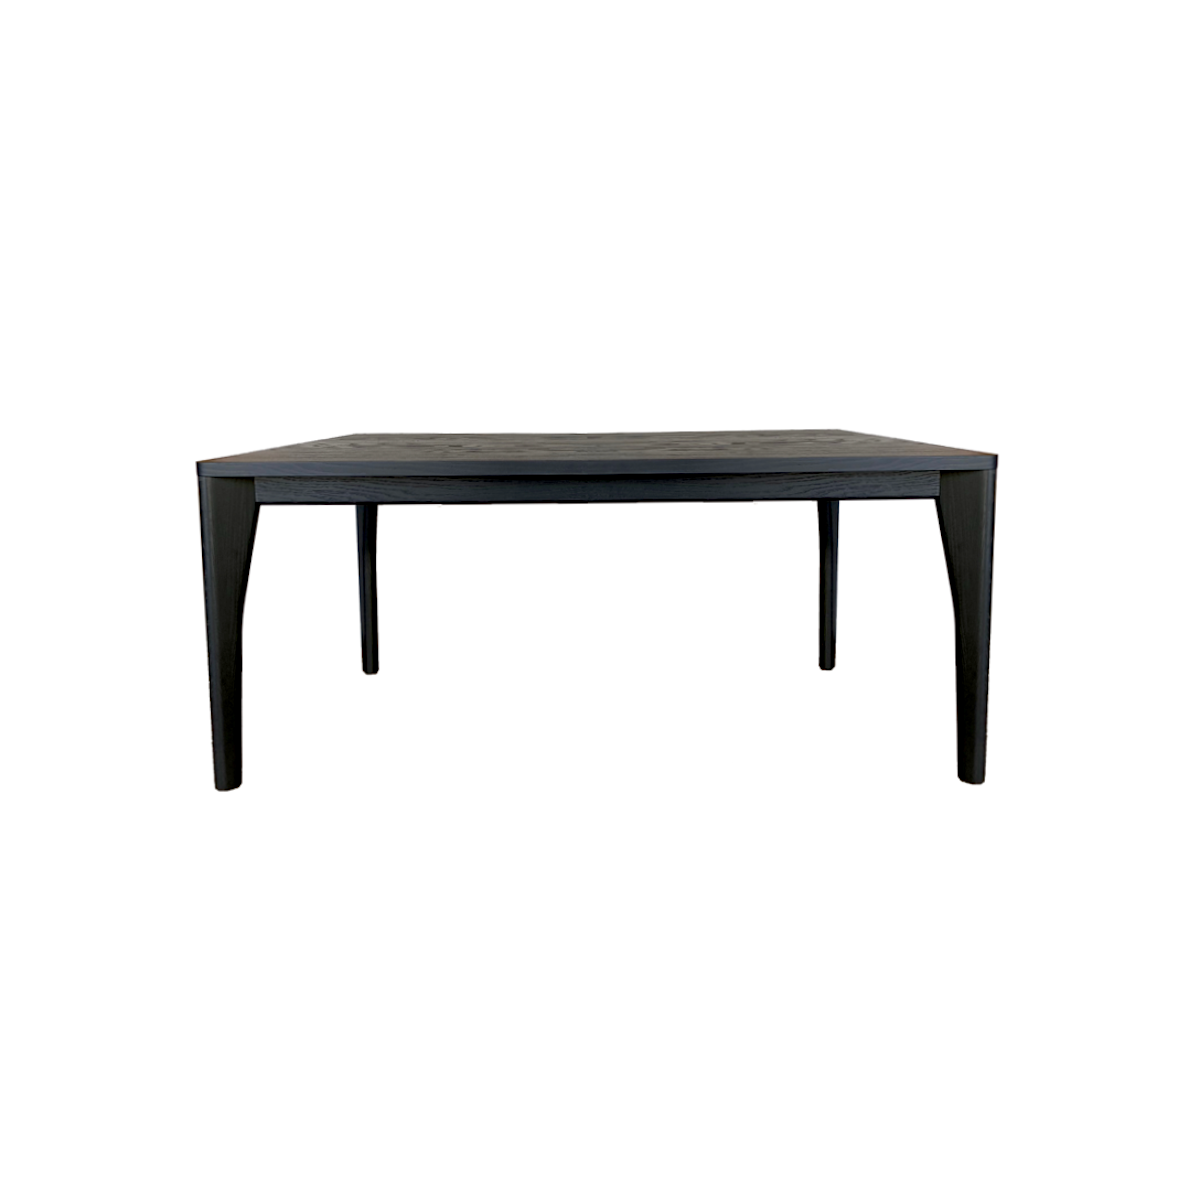 Fold Dining Table | Black